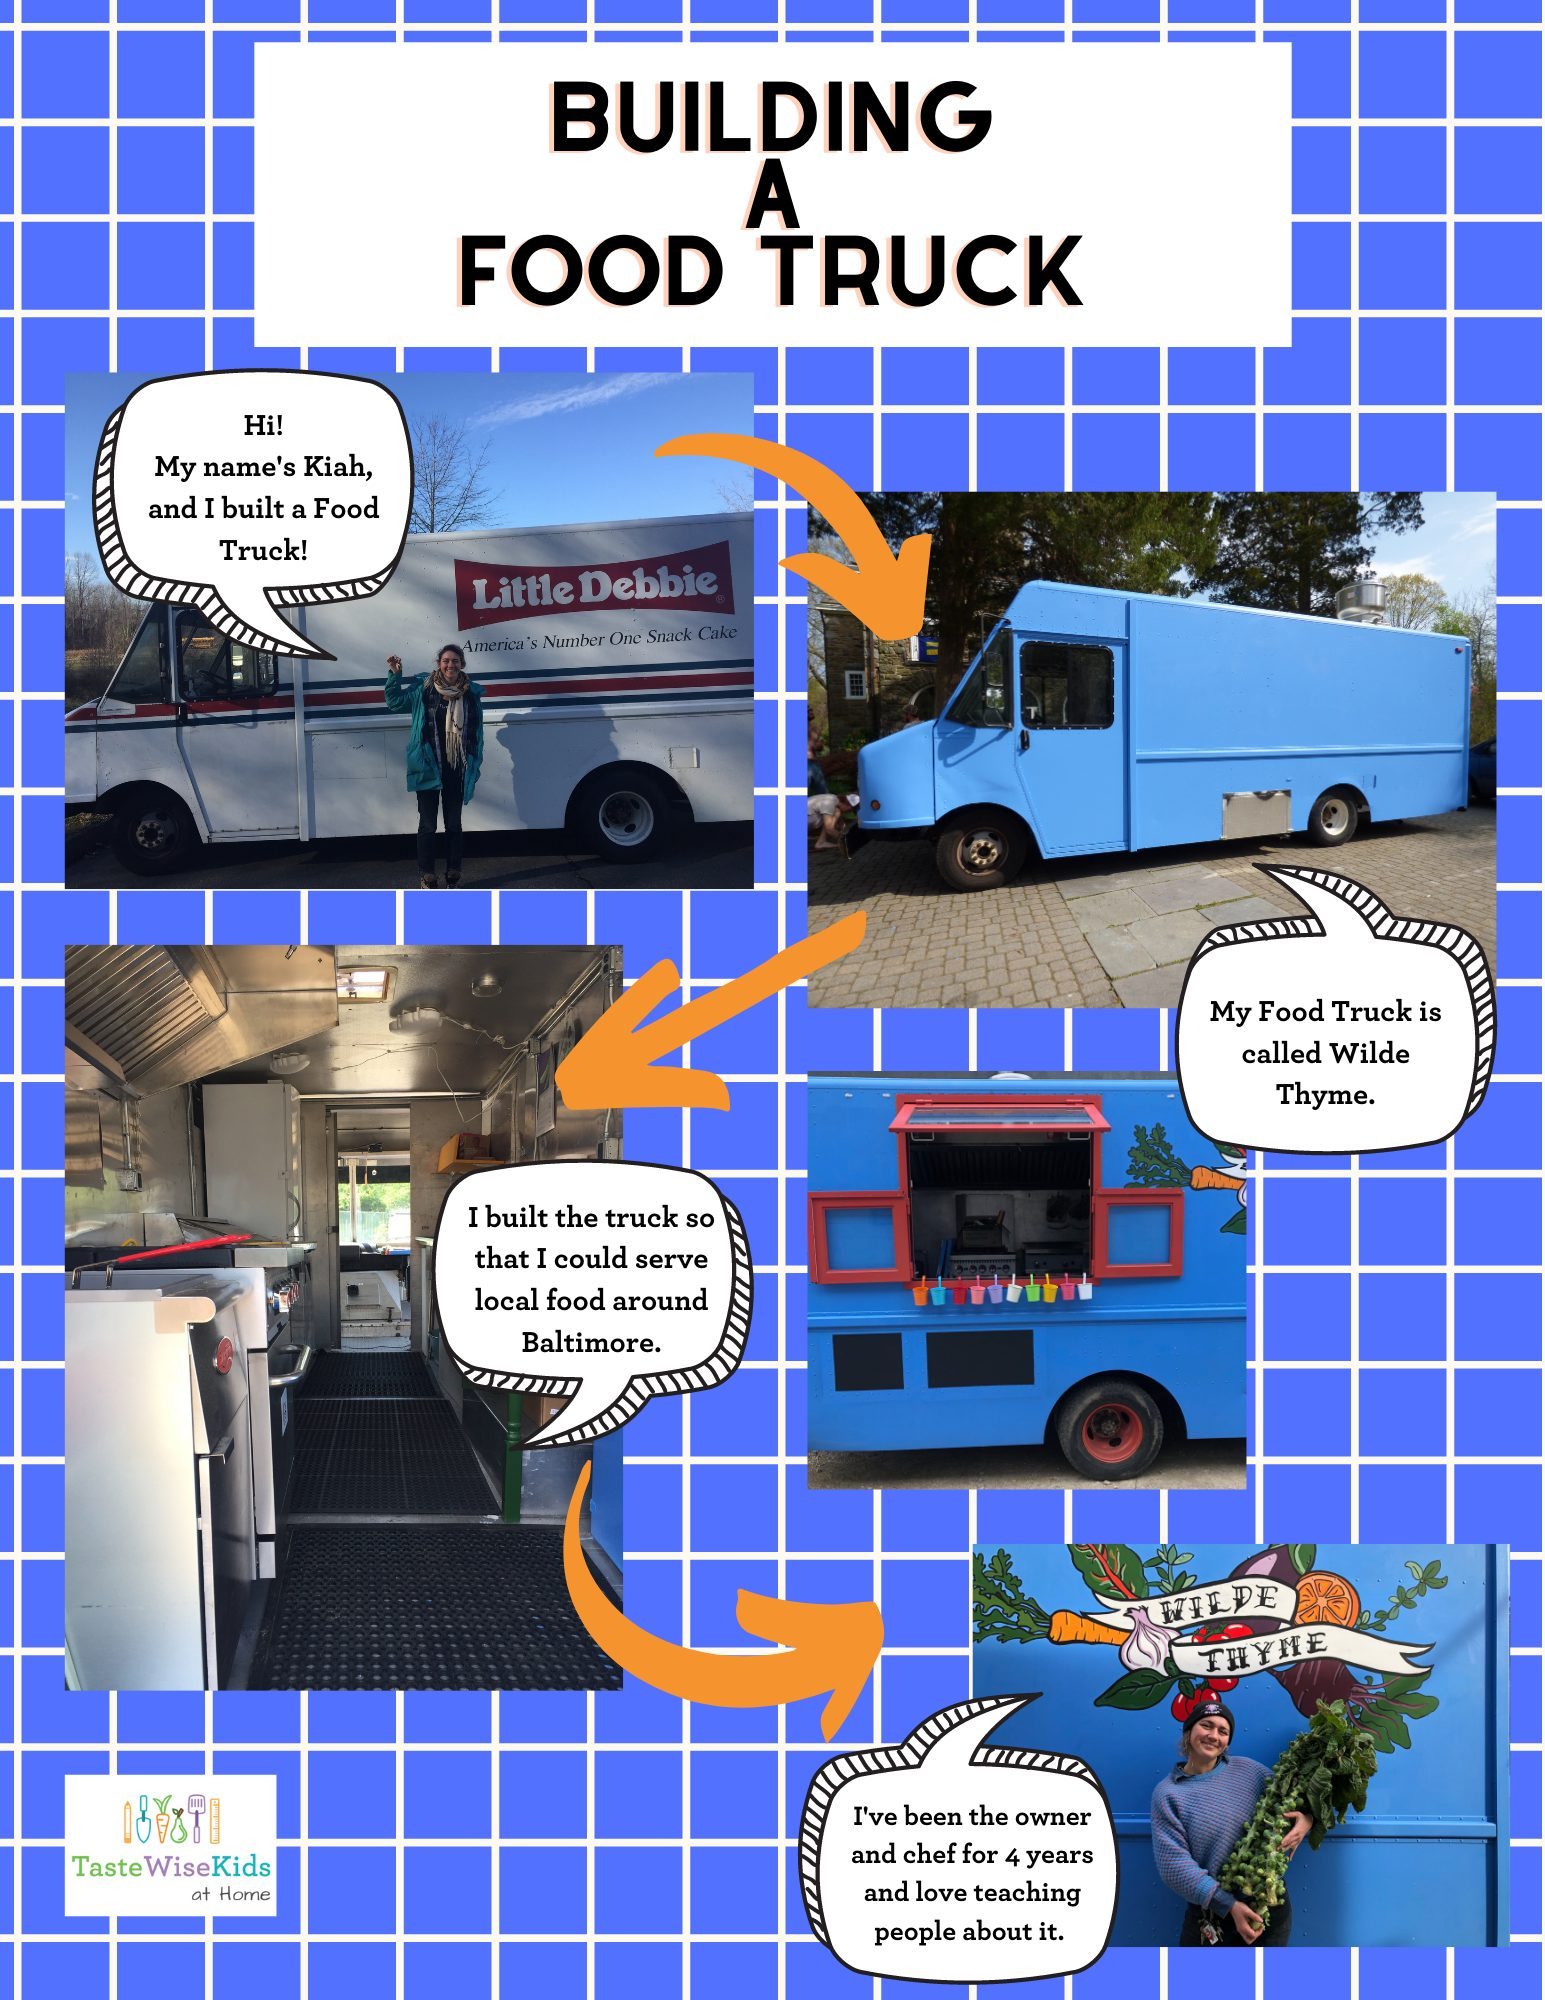 Building a Food Truck pg 1